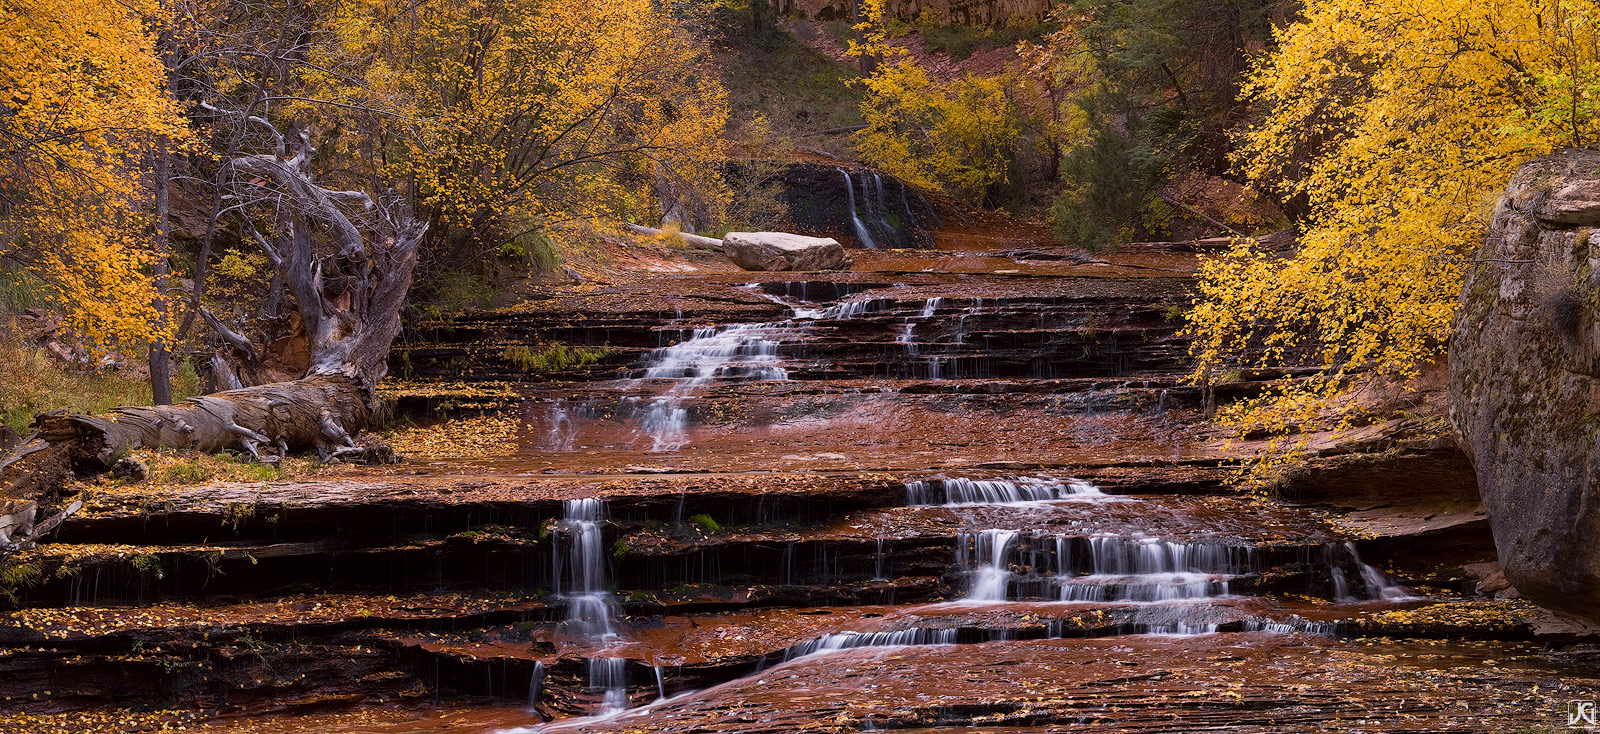 Panoramic view of Archangel Cascades, a series of waterfalls over the sandstone creek bed, along the way to the Subway in Zion...